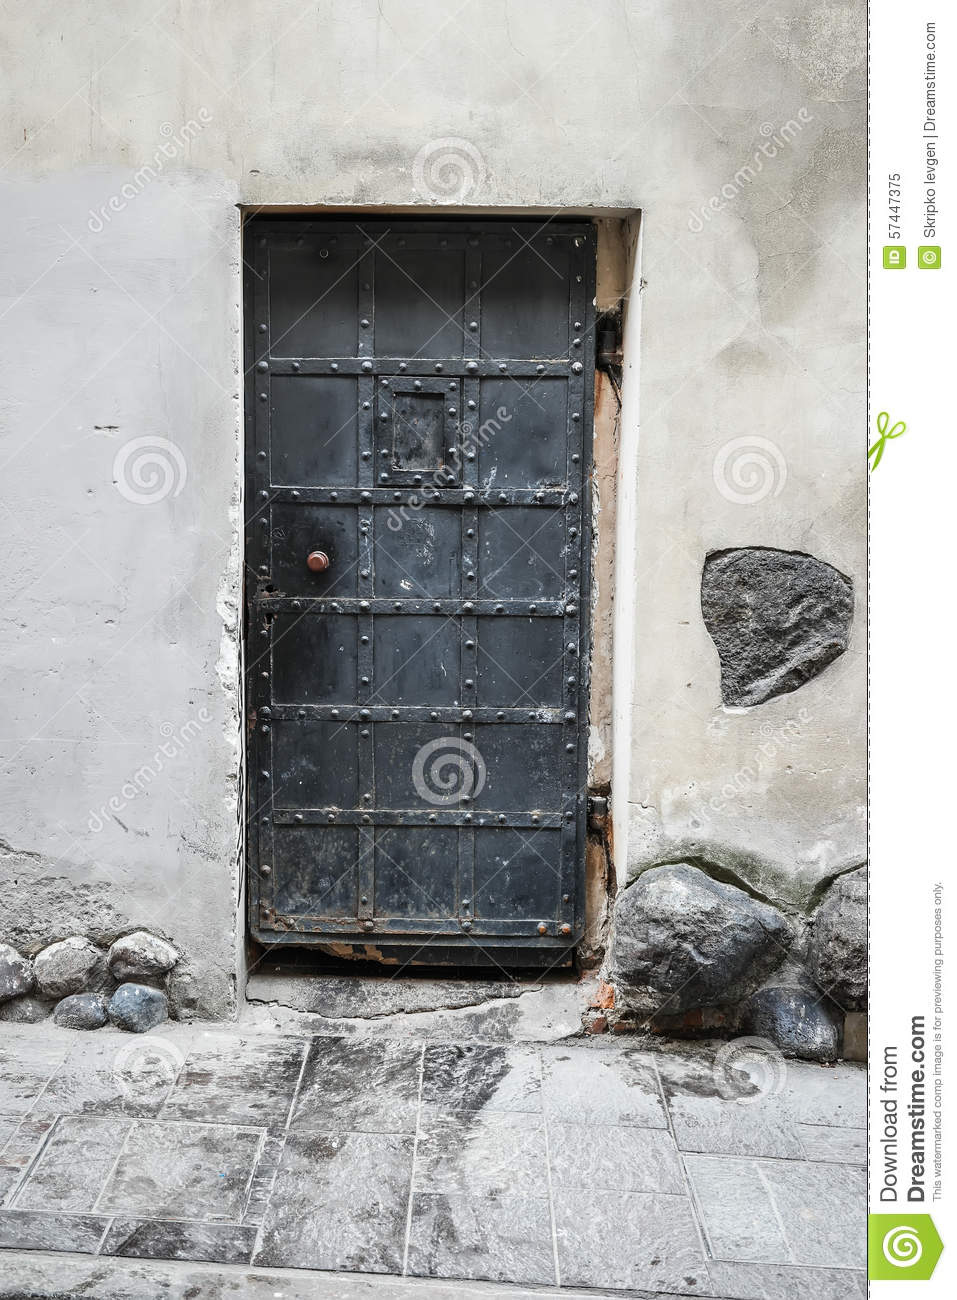 Antique iron door - Antique Iron Door Stock Image. Image Of Texture, Lattice - 57447375